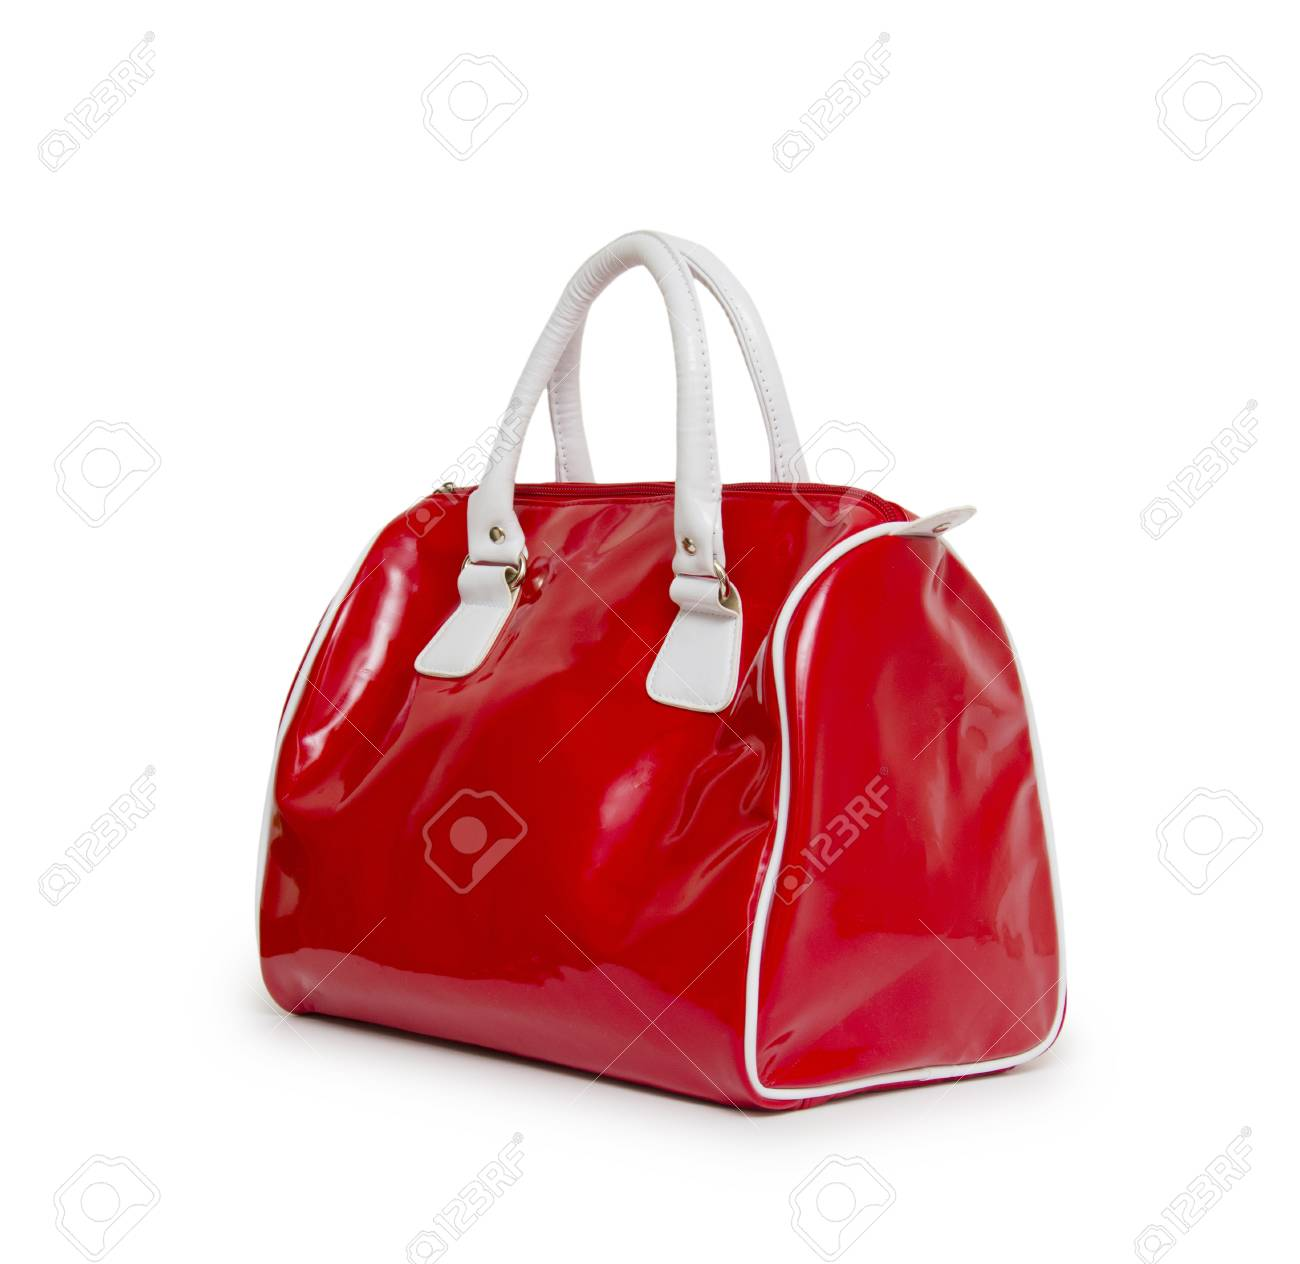 d001316d08405 Red women bag isolated on white background Stock Photo - 32902684